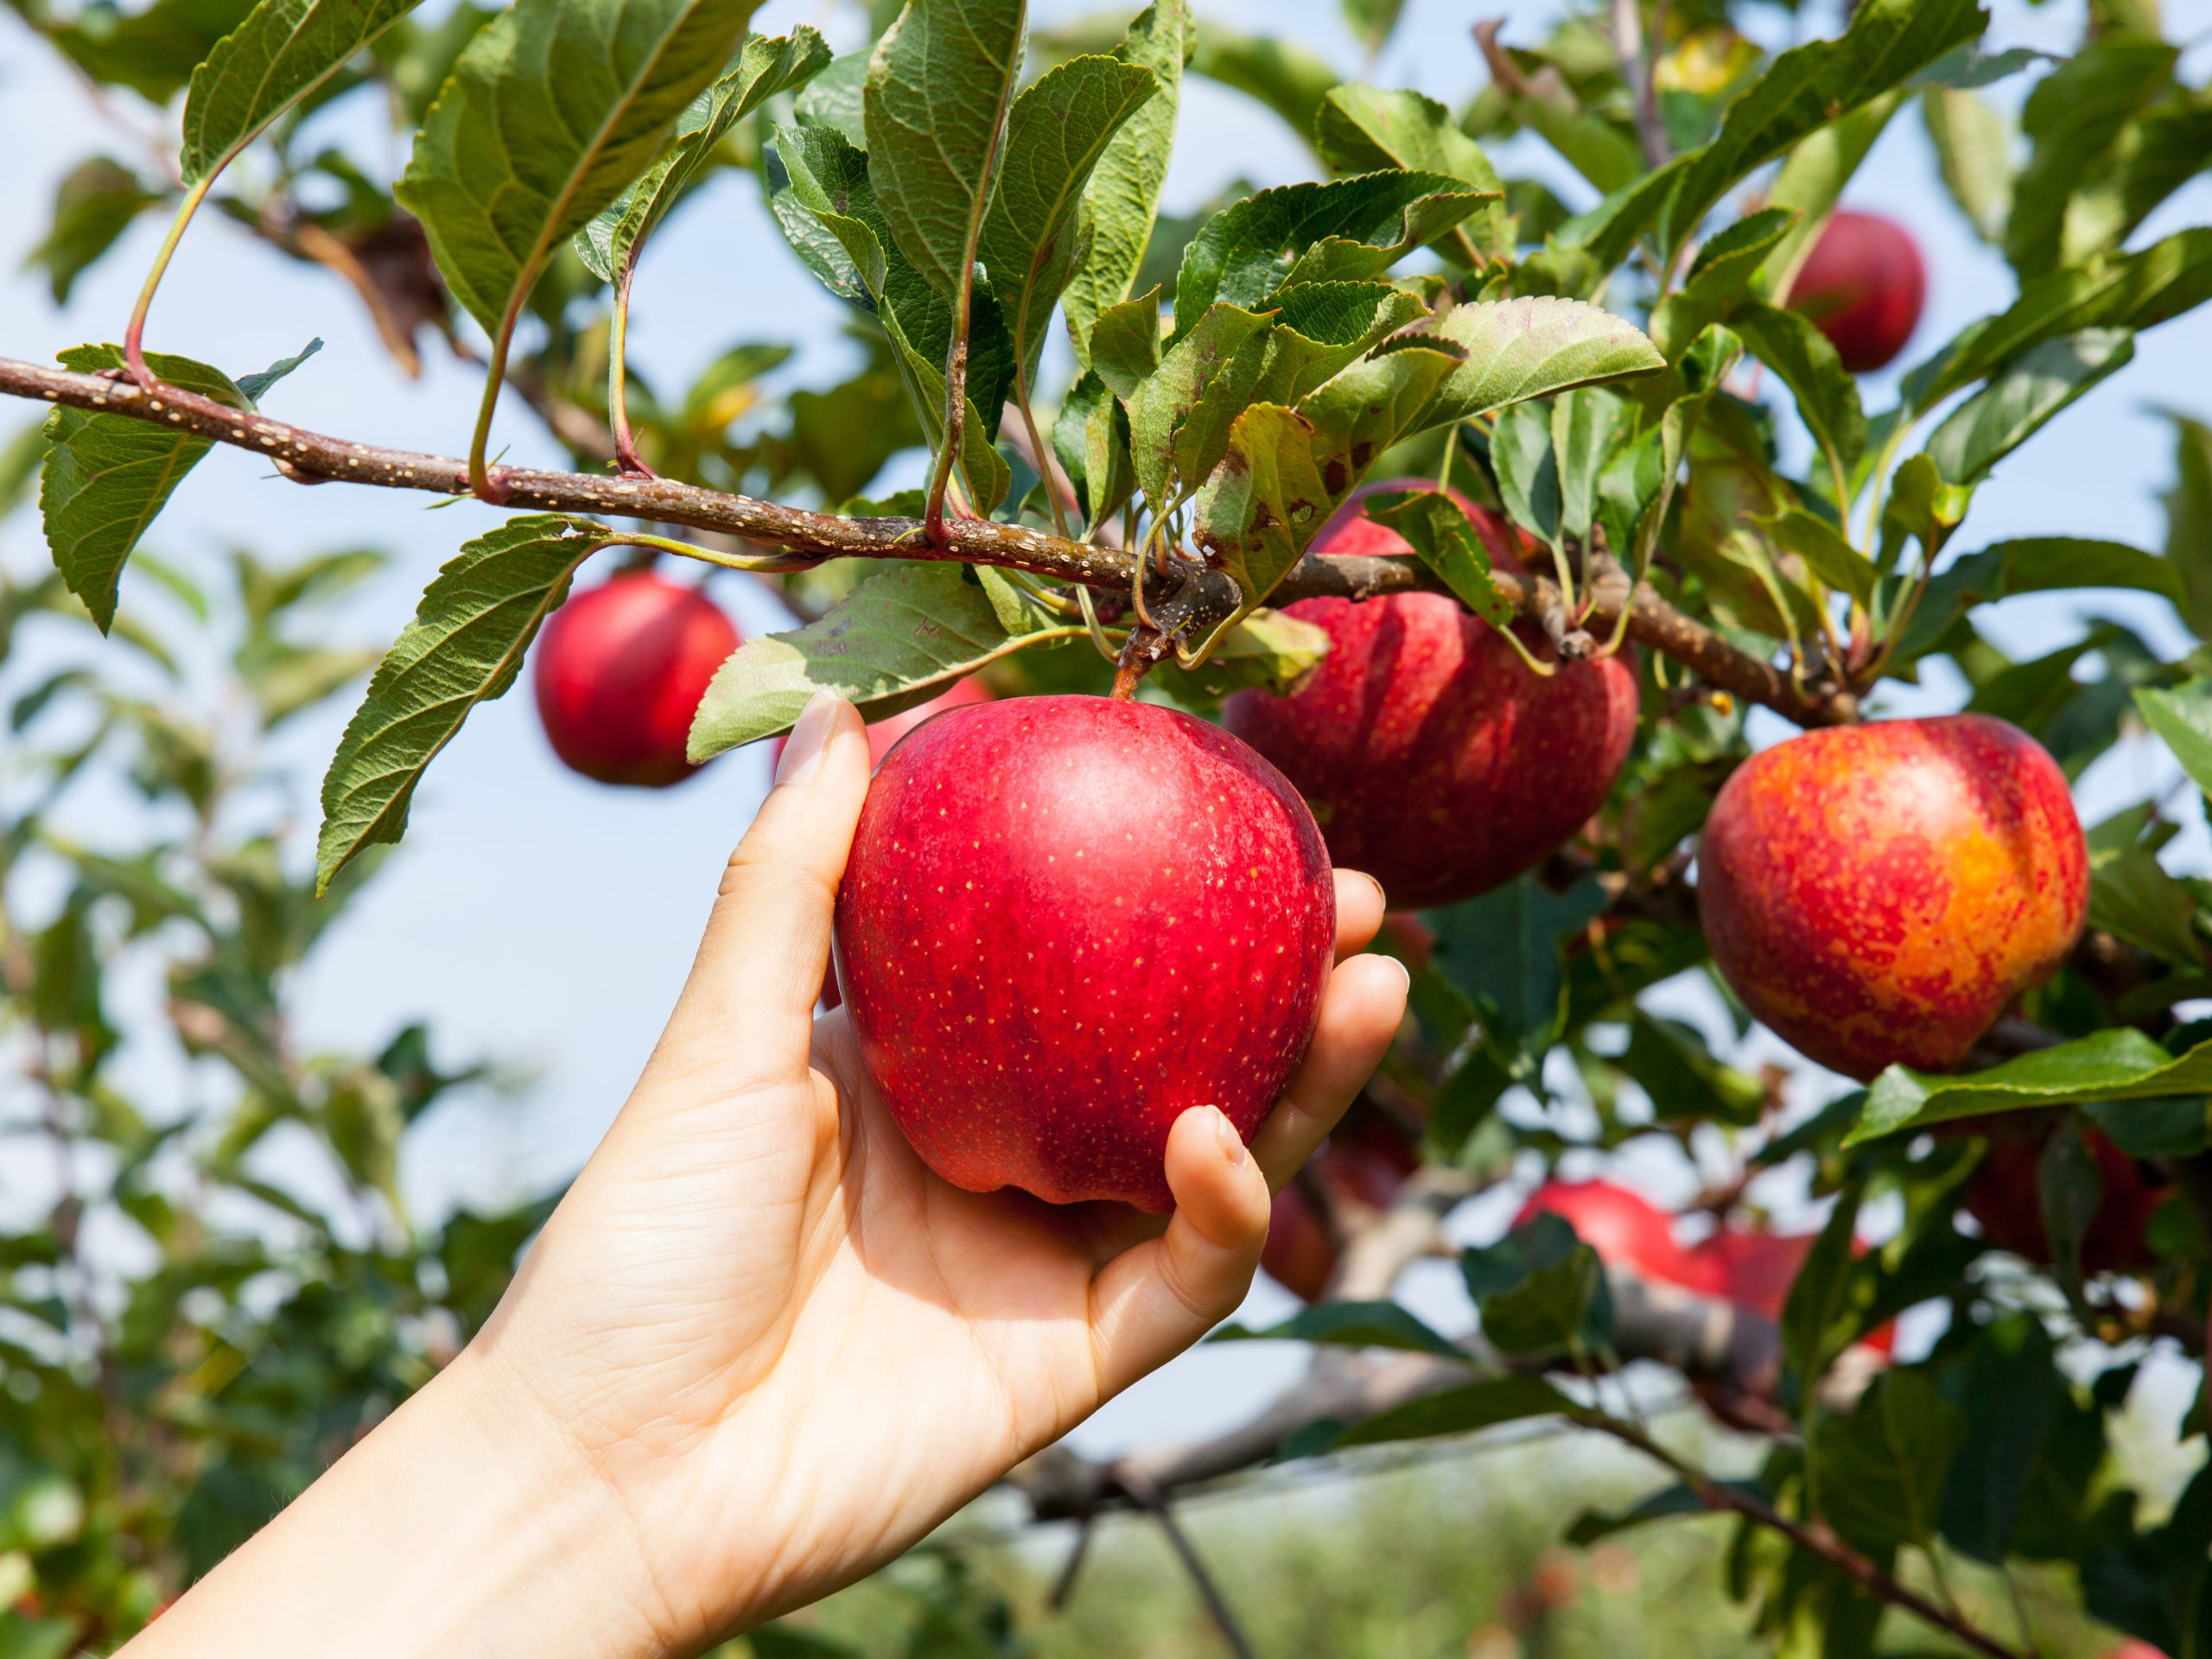 Apple benefits - picking apples